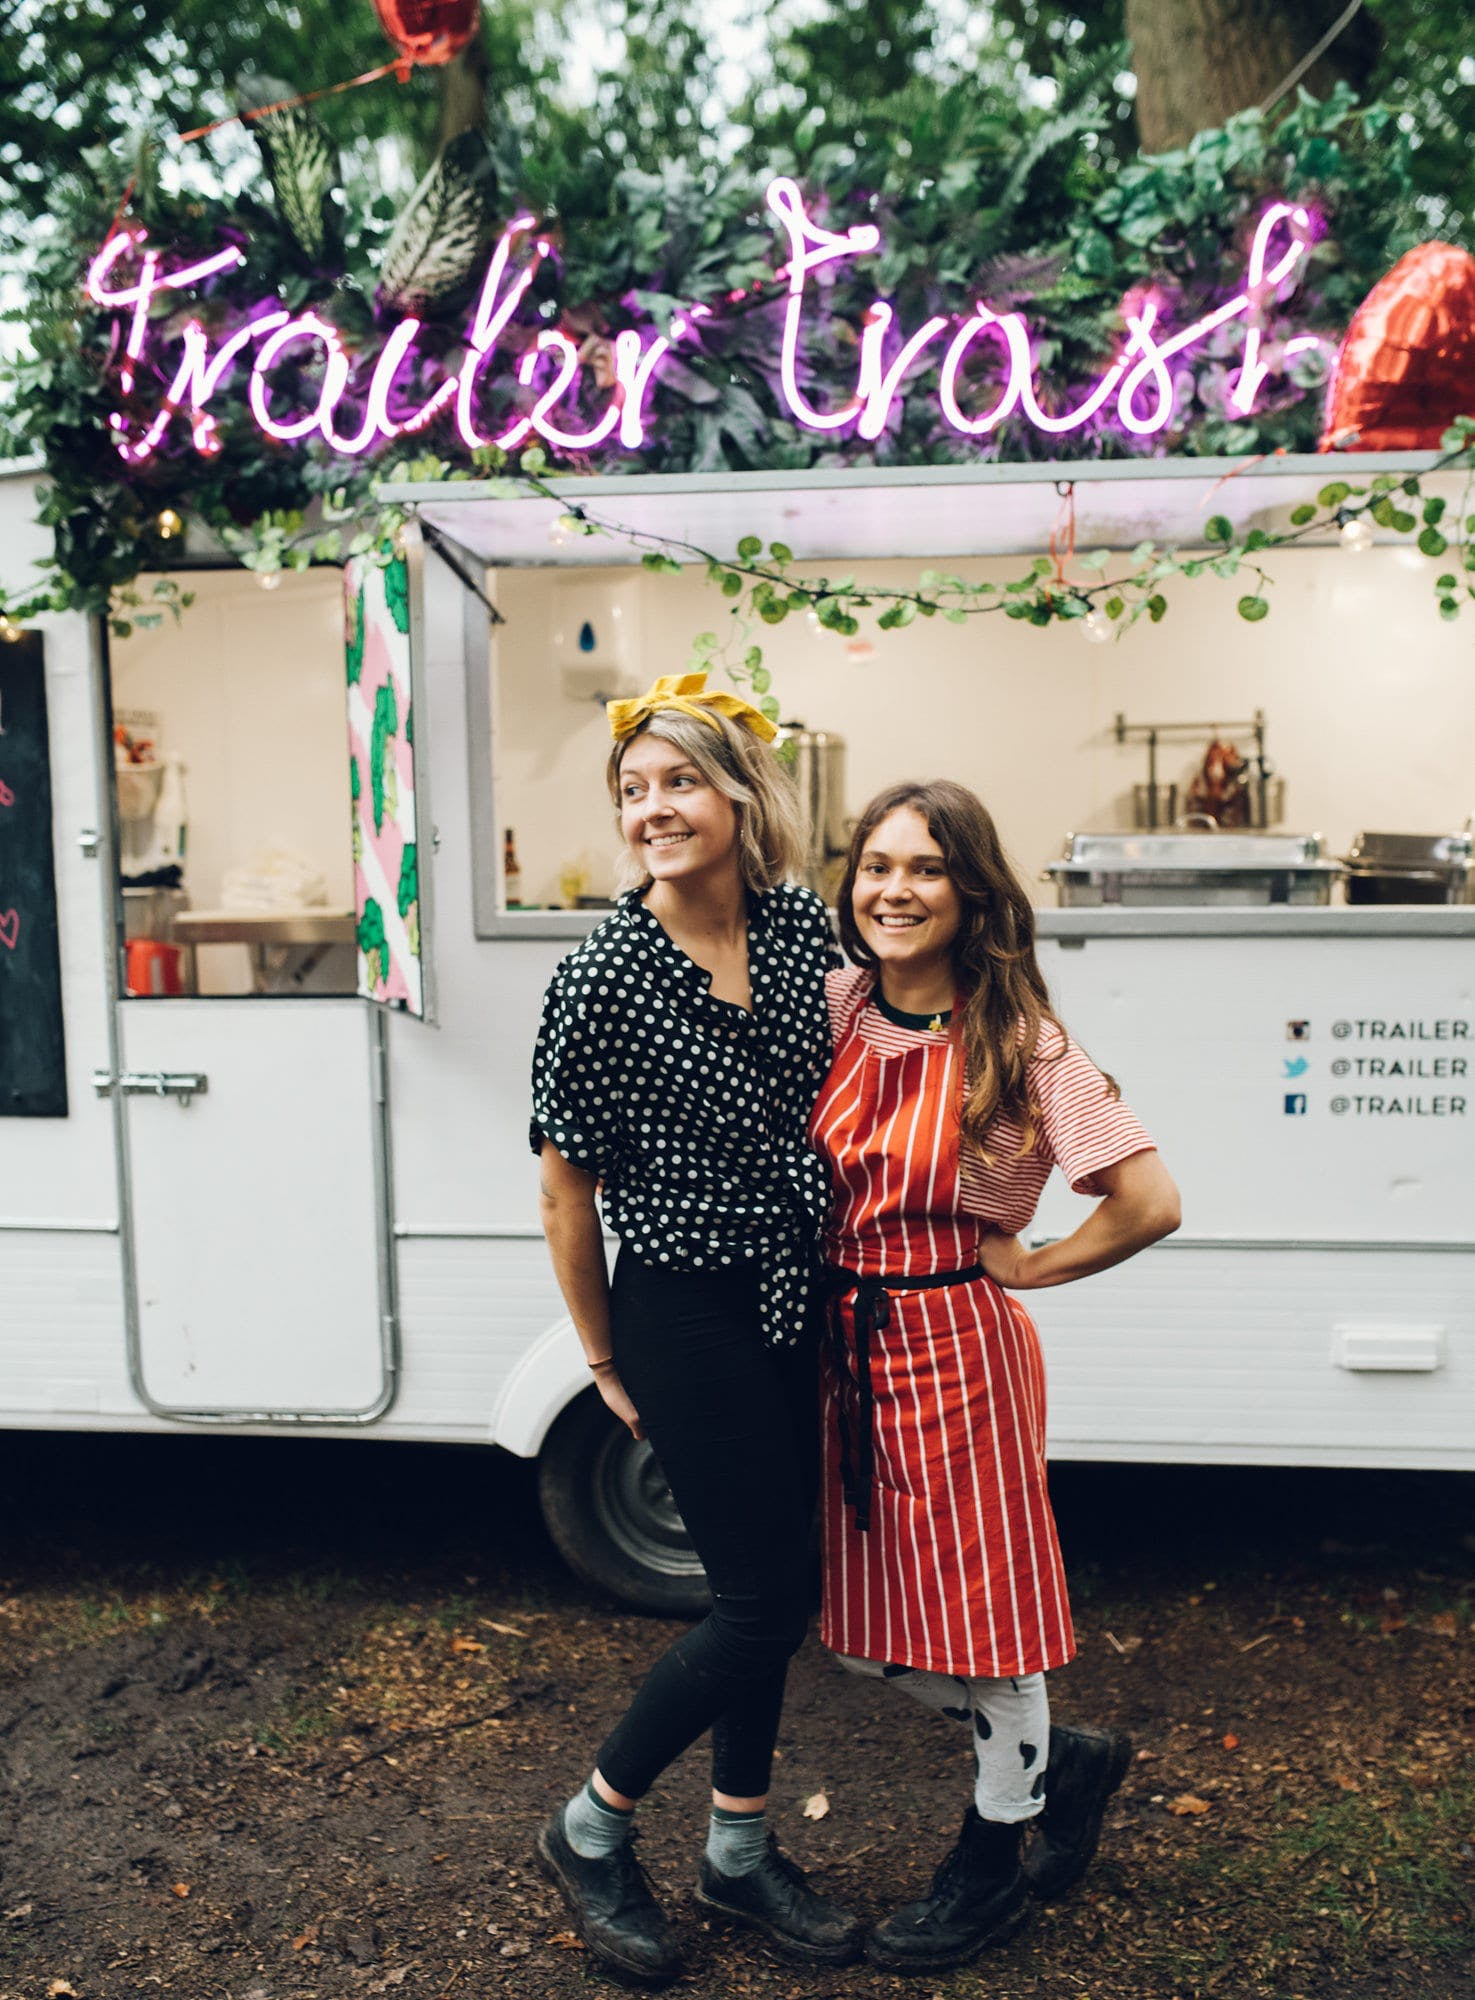 Feast-It-Trailer-Trash-Burger-Street-Food-Event-Catering-Book-Now-seven.jpg